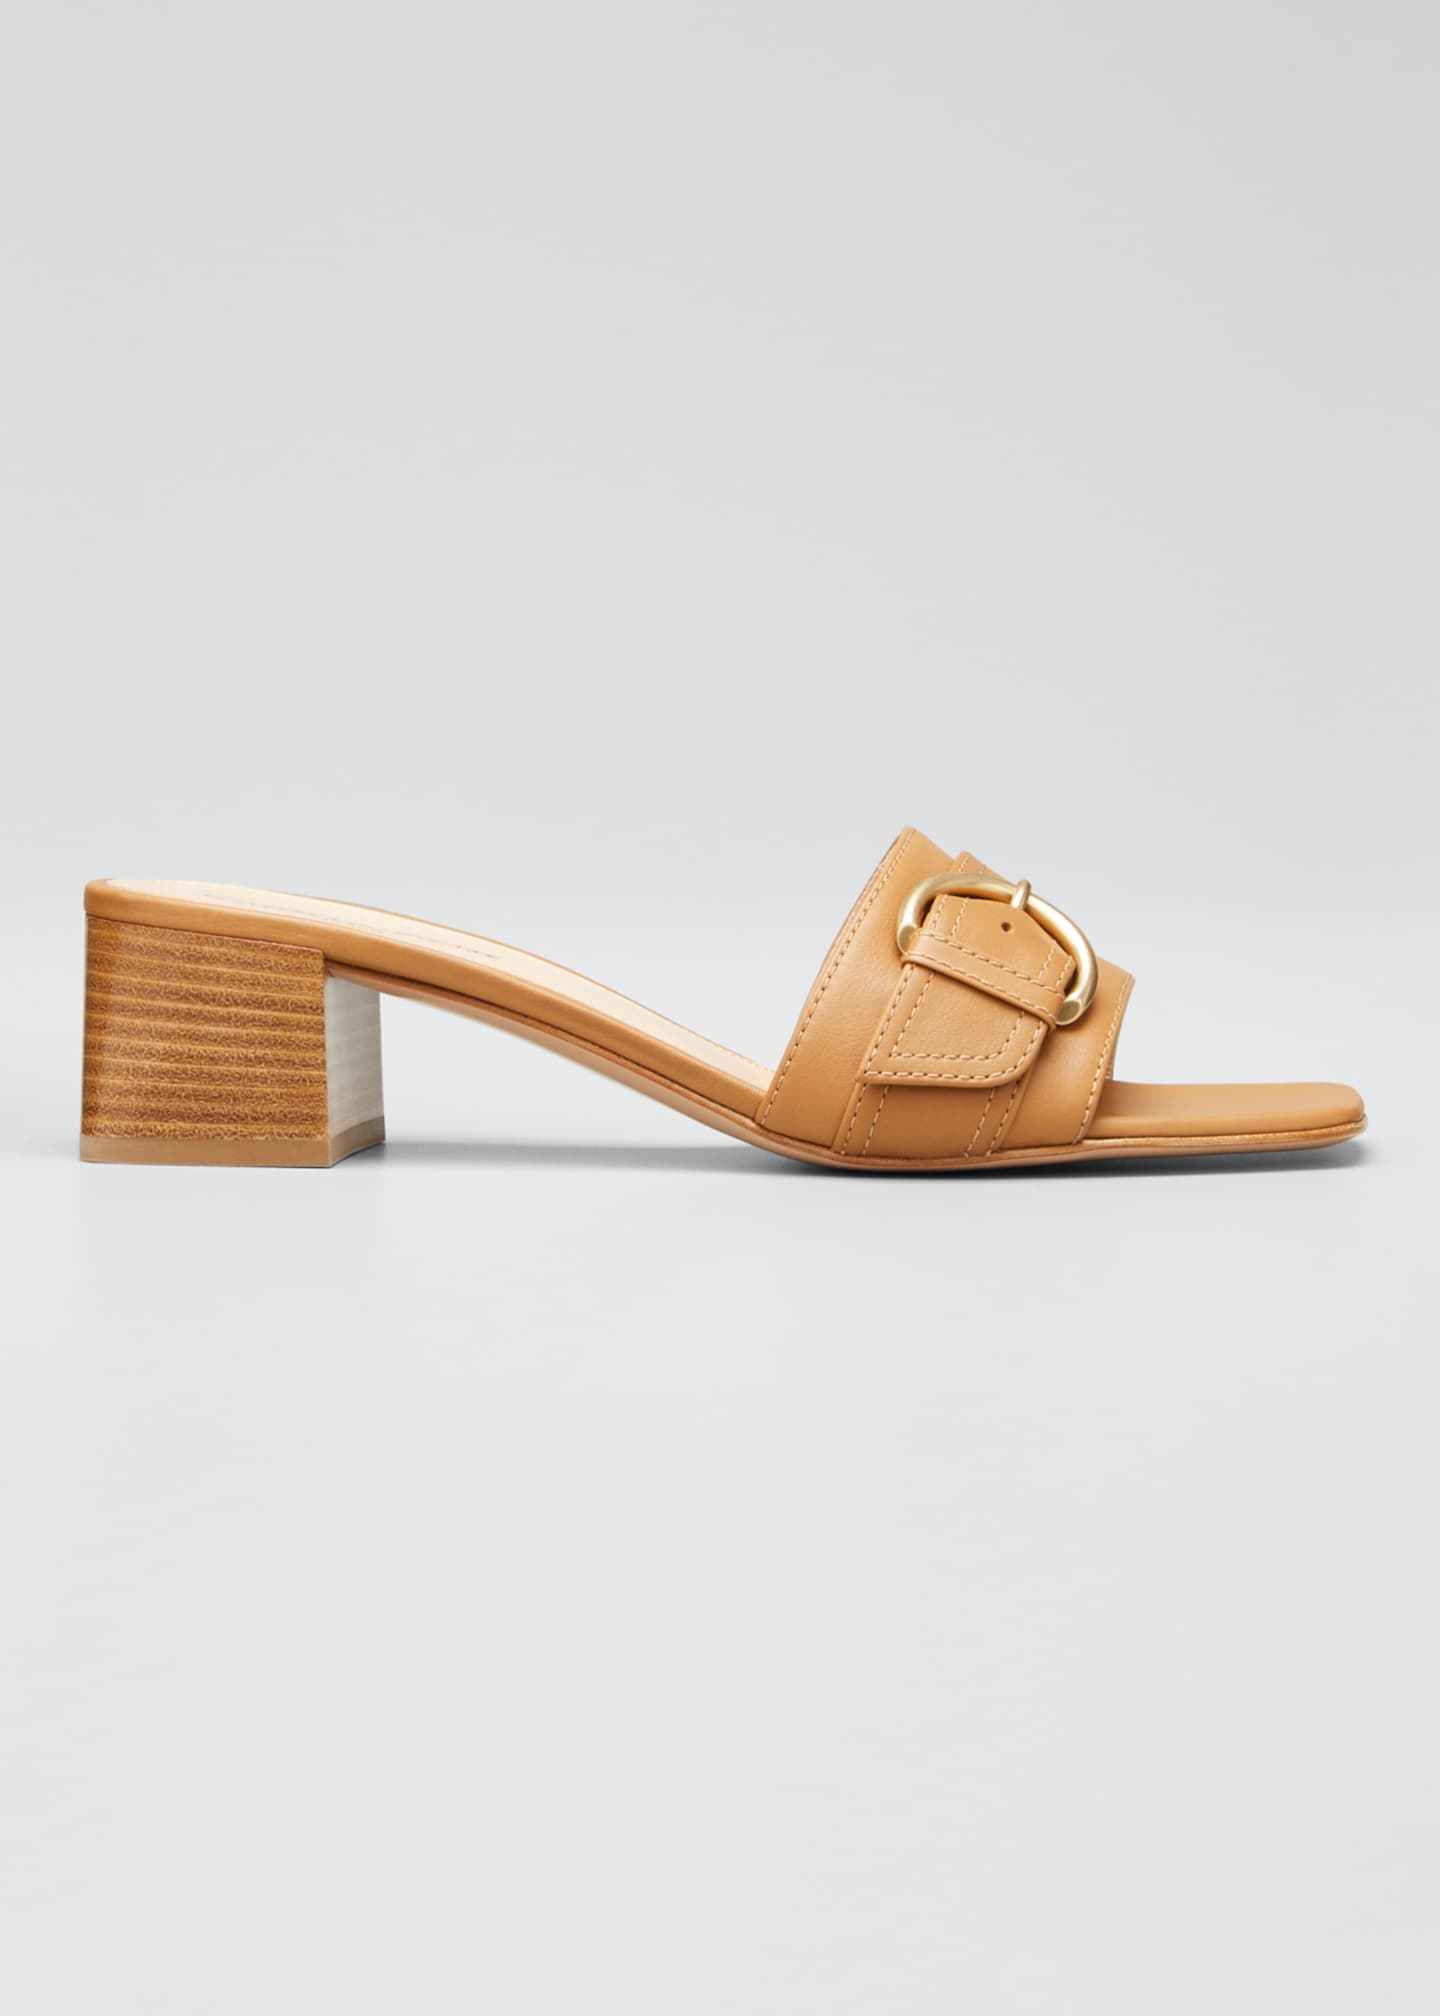 Gianvito Rossi Leather Buckle Mule Heeled Sandals